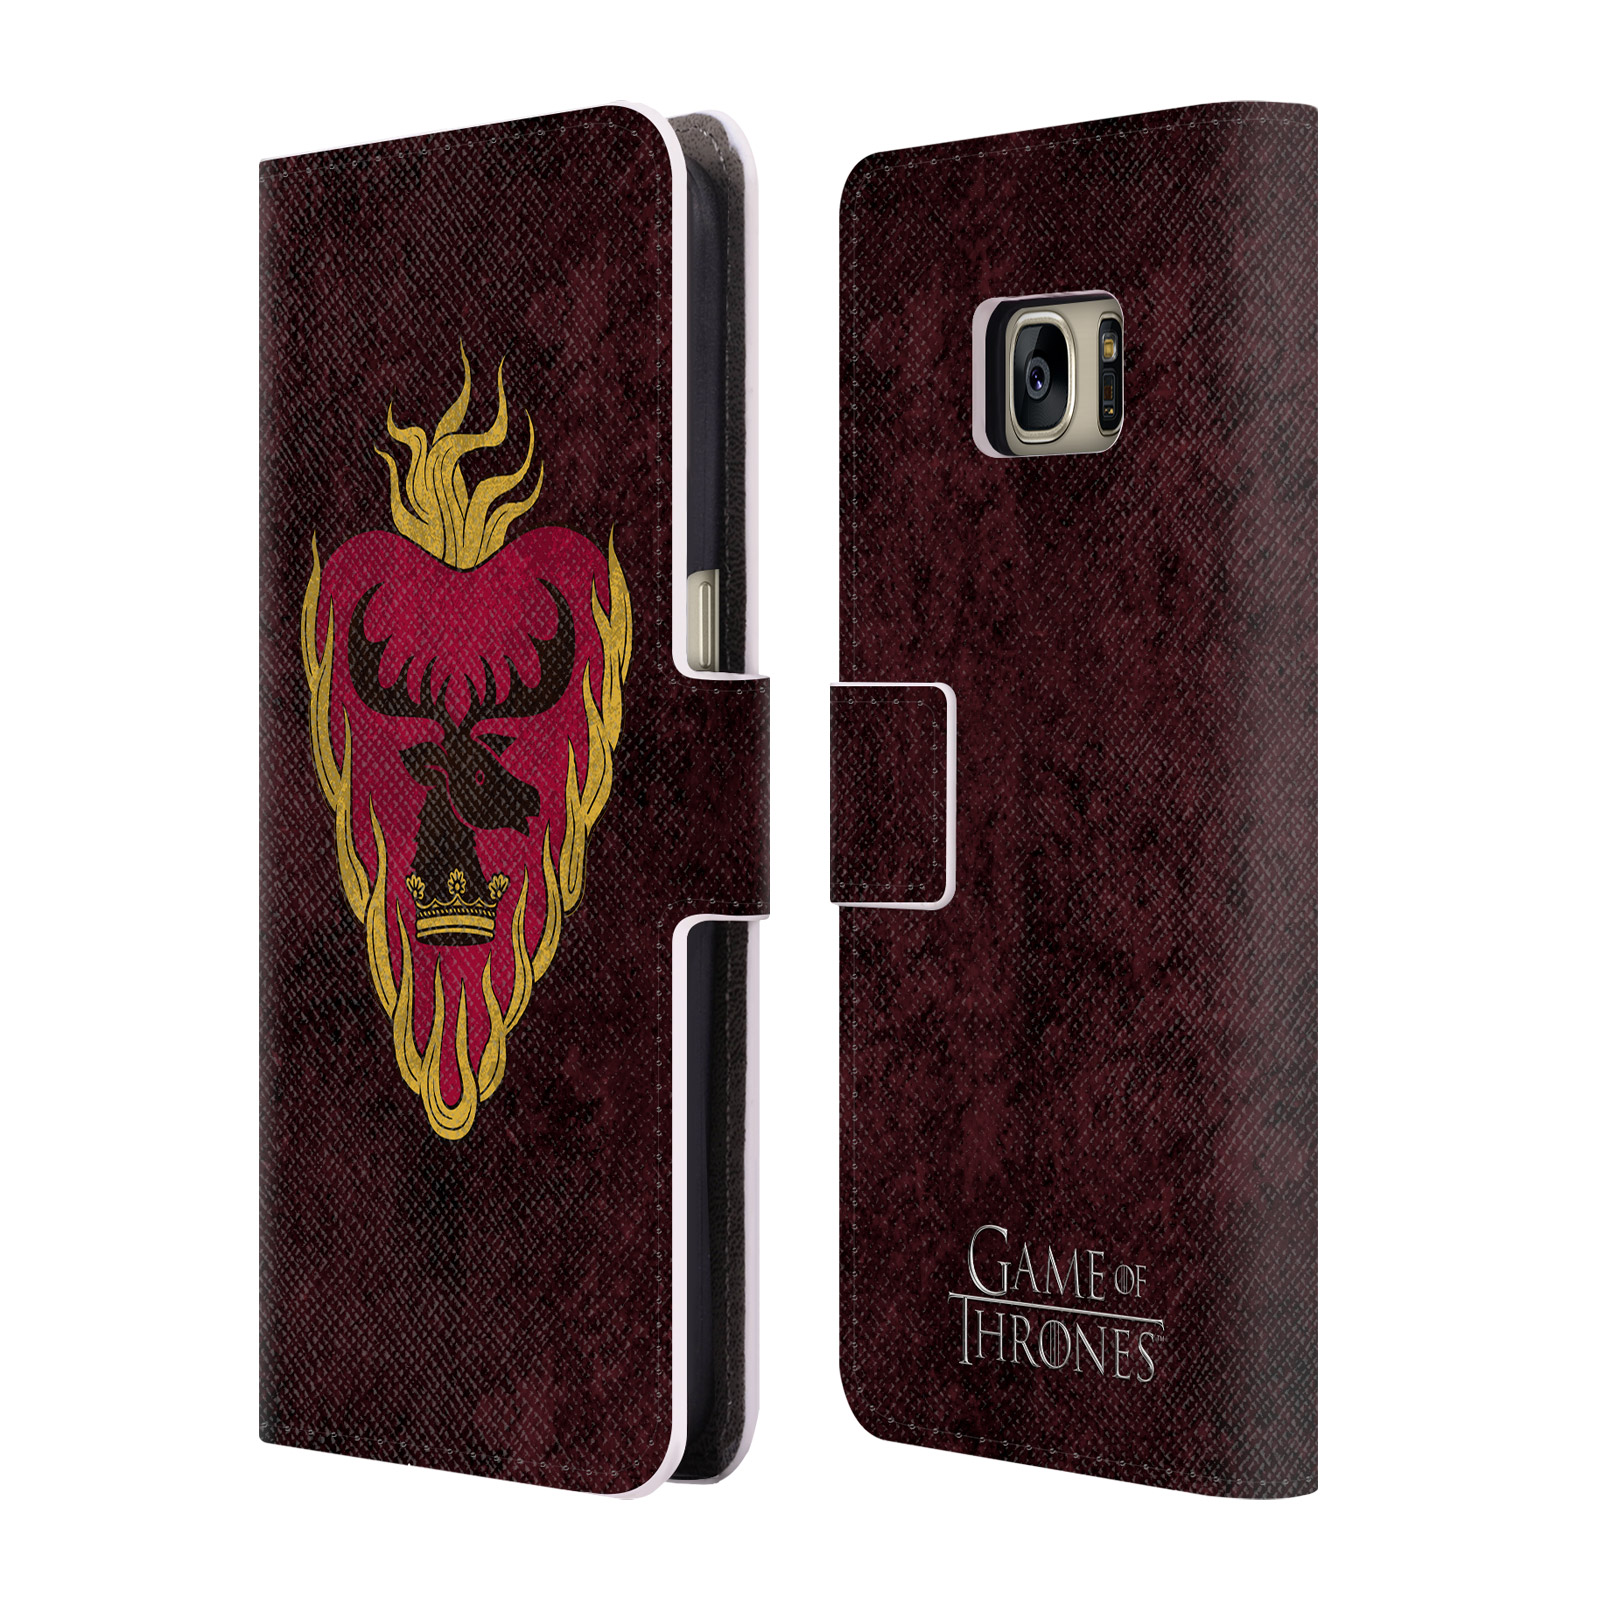 OFFICIAL HBO GAME OF THRONES DARK DISTRESSED SIGILS LEATHER BOOK WALLET CASE COVER FOR SAMSUNG PHONES 1